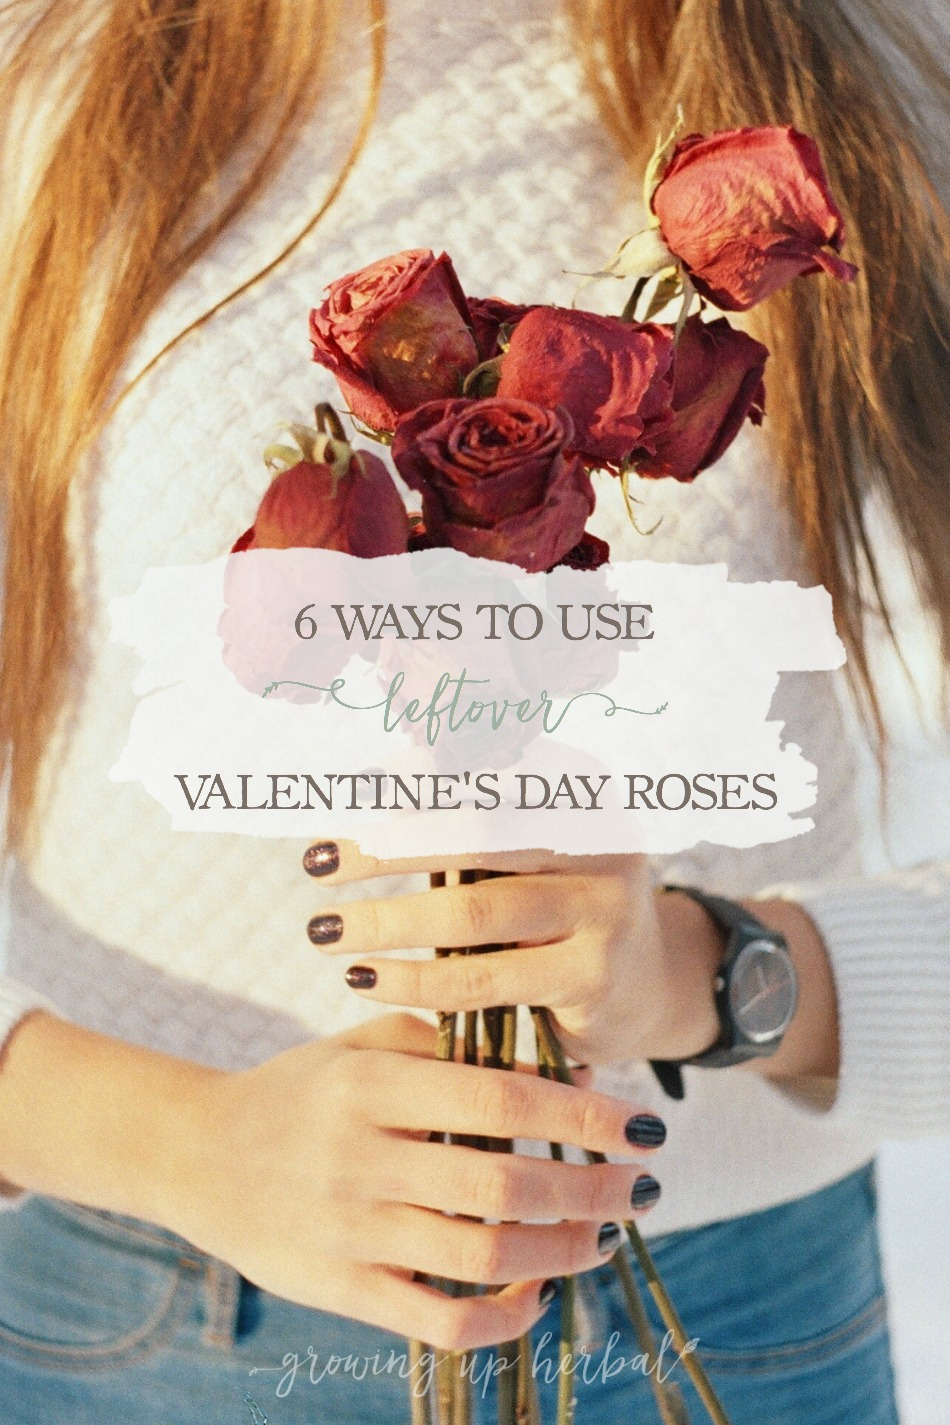 6 Ways To Use Leftover Valentine's Day Roses   Growing Up Herbal   Don't throw your roses away after Valentine's Day. Here are some ways to put leftover Valentine's Day roses to good use!